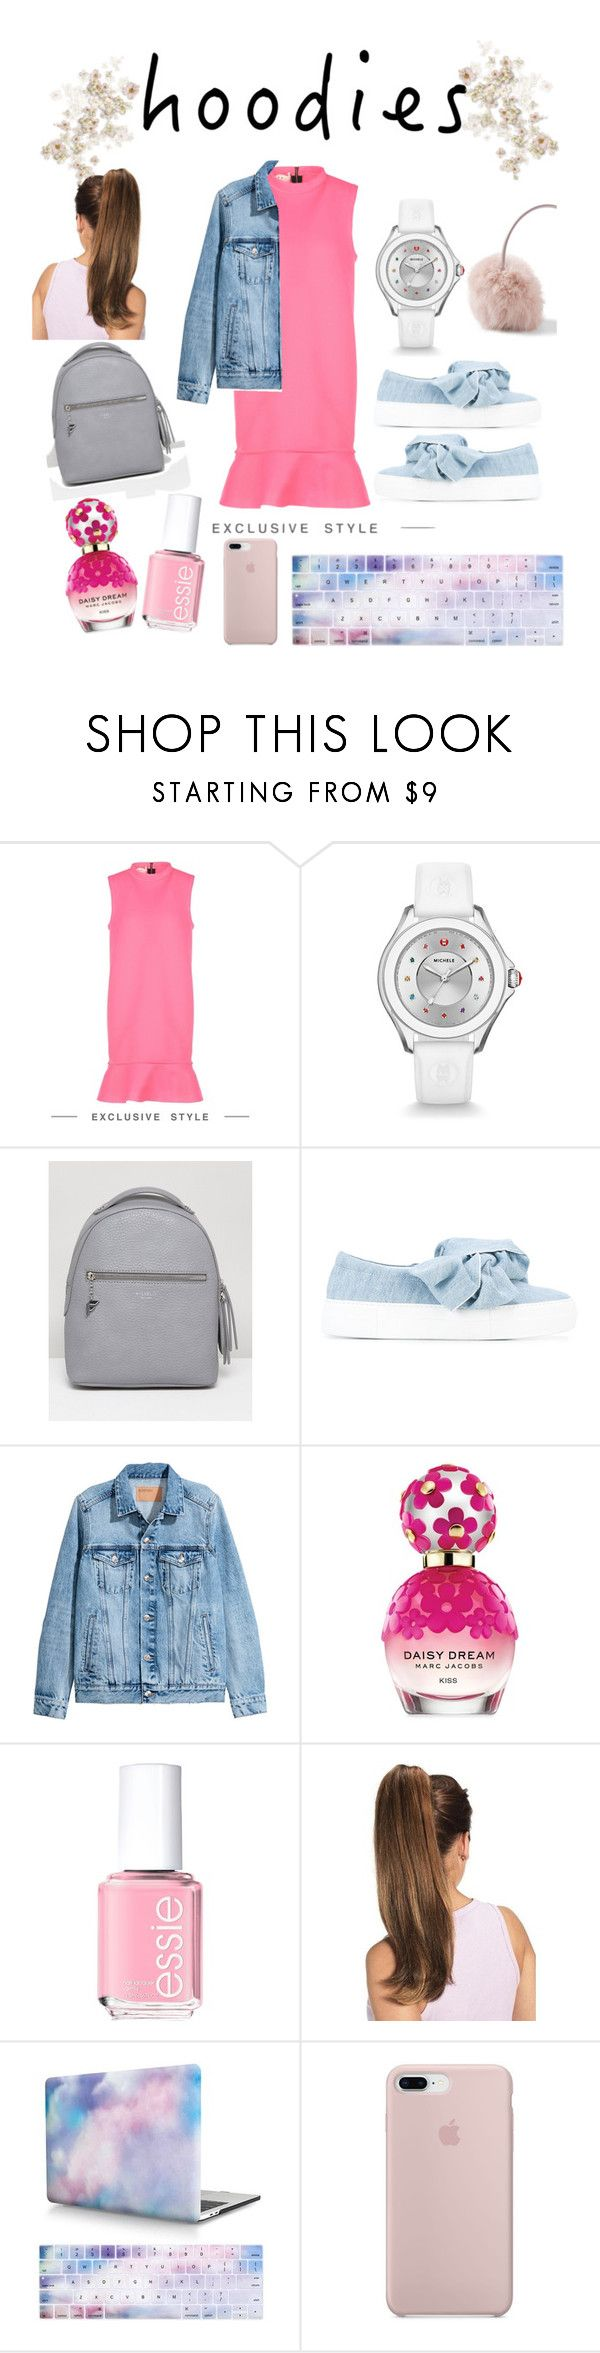 """""""studying"""" by huda94 ❤ liked on Polyvore featuring Marni, Michele, Fiorelli, Joshua's, H&M, Marc Jacobs, Essie and Hoodies"""